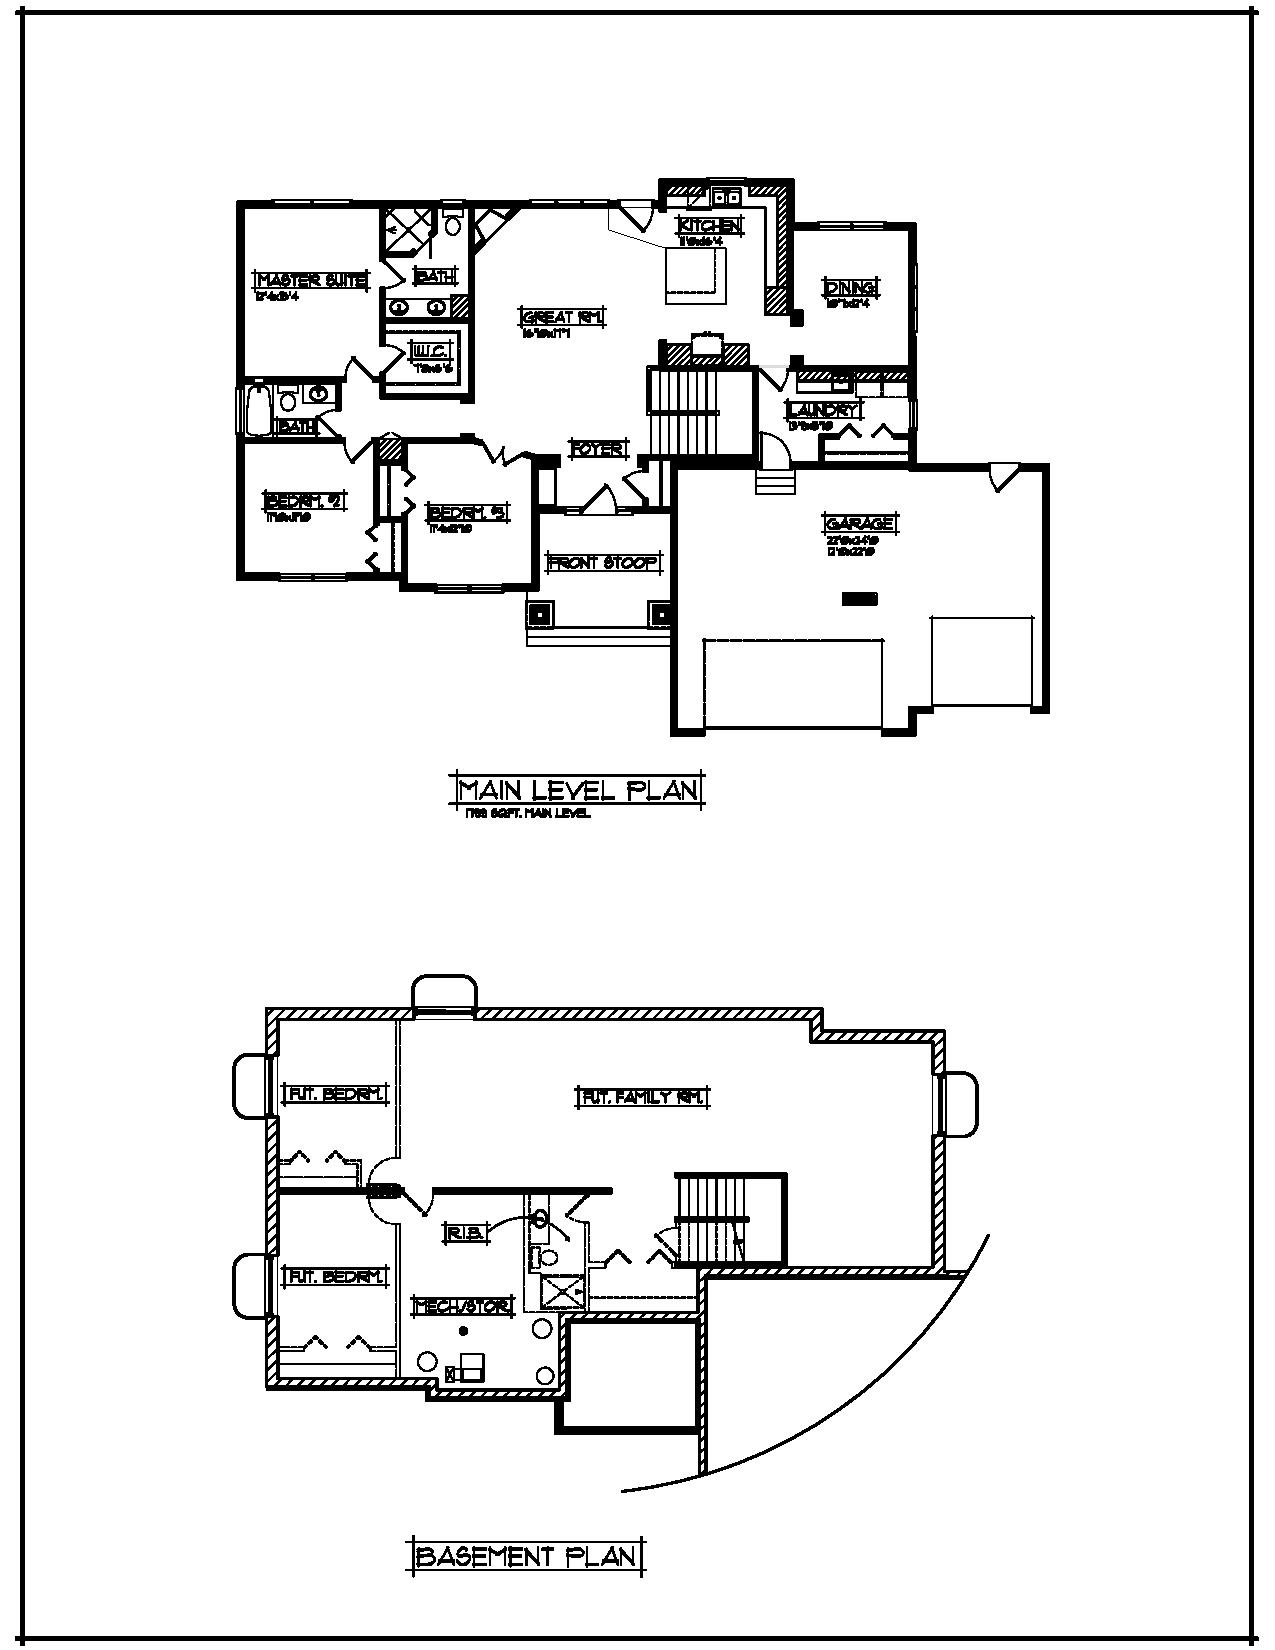 savanah-artwork-floor-plan-page-001